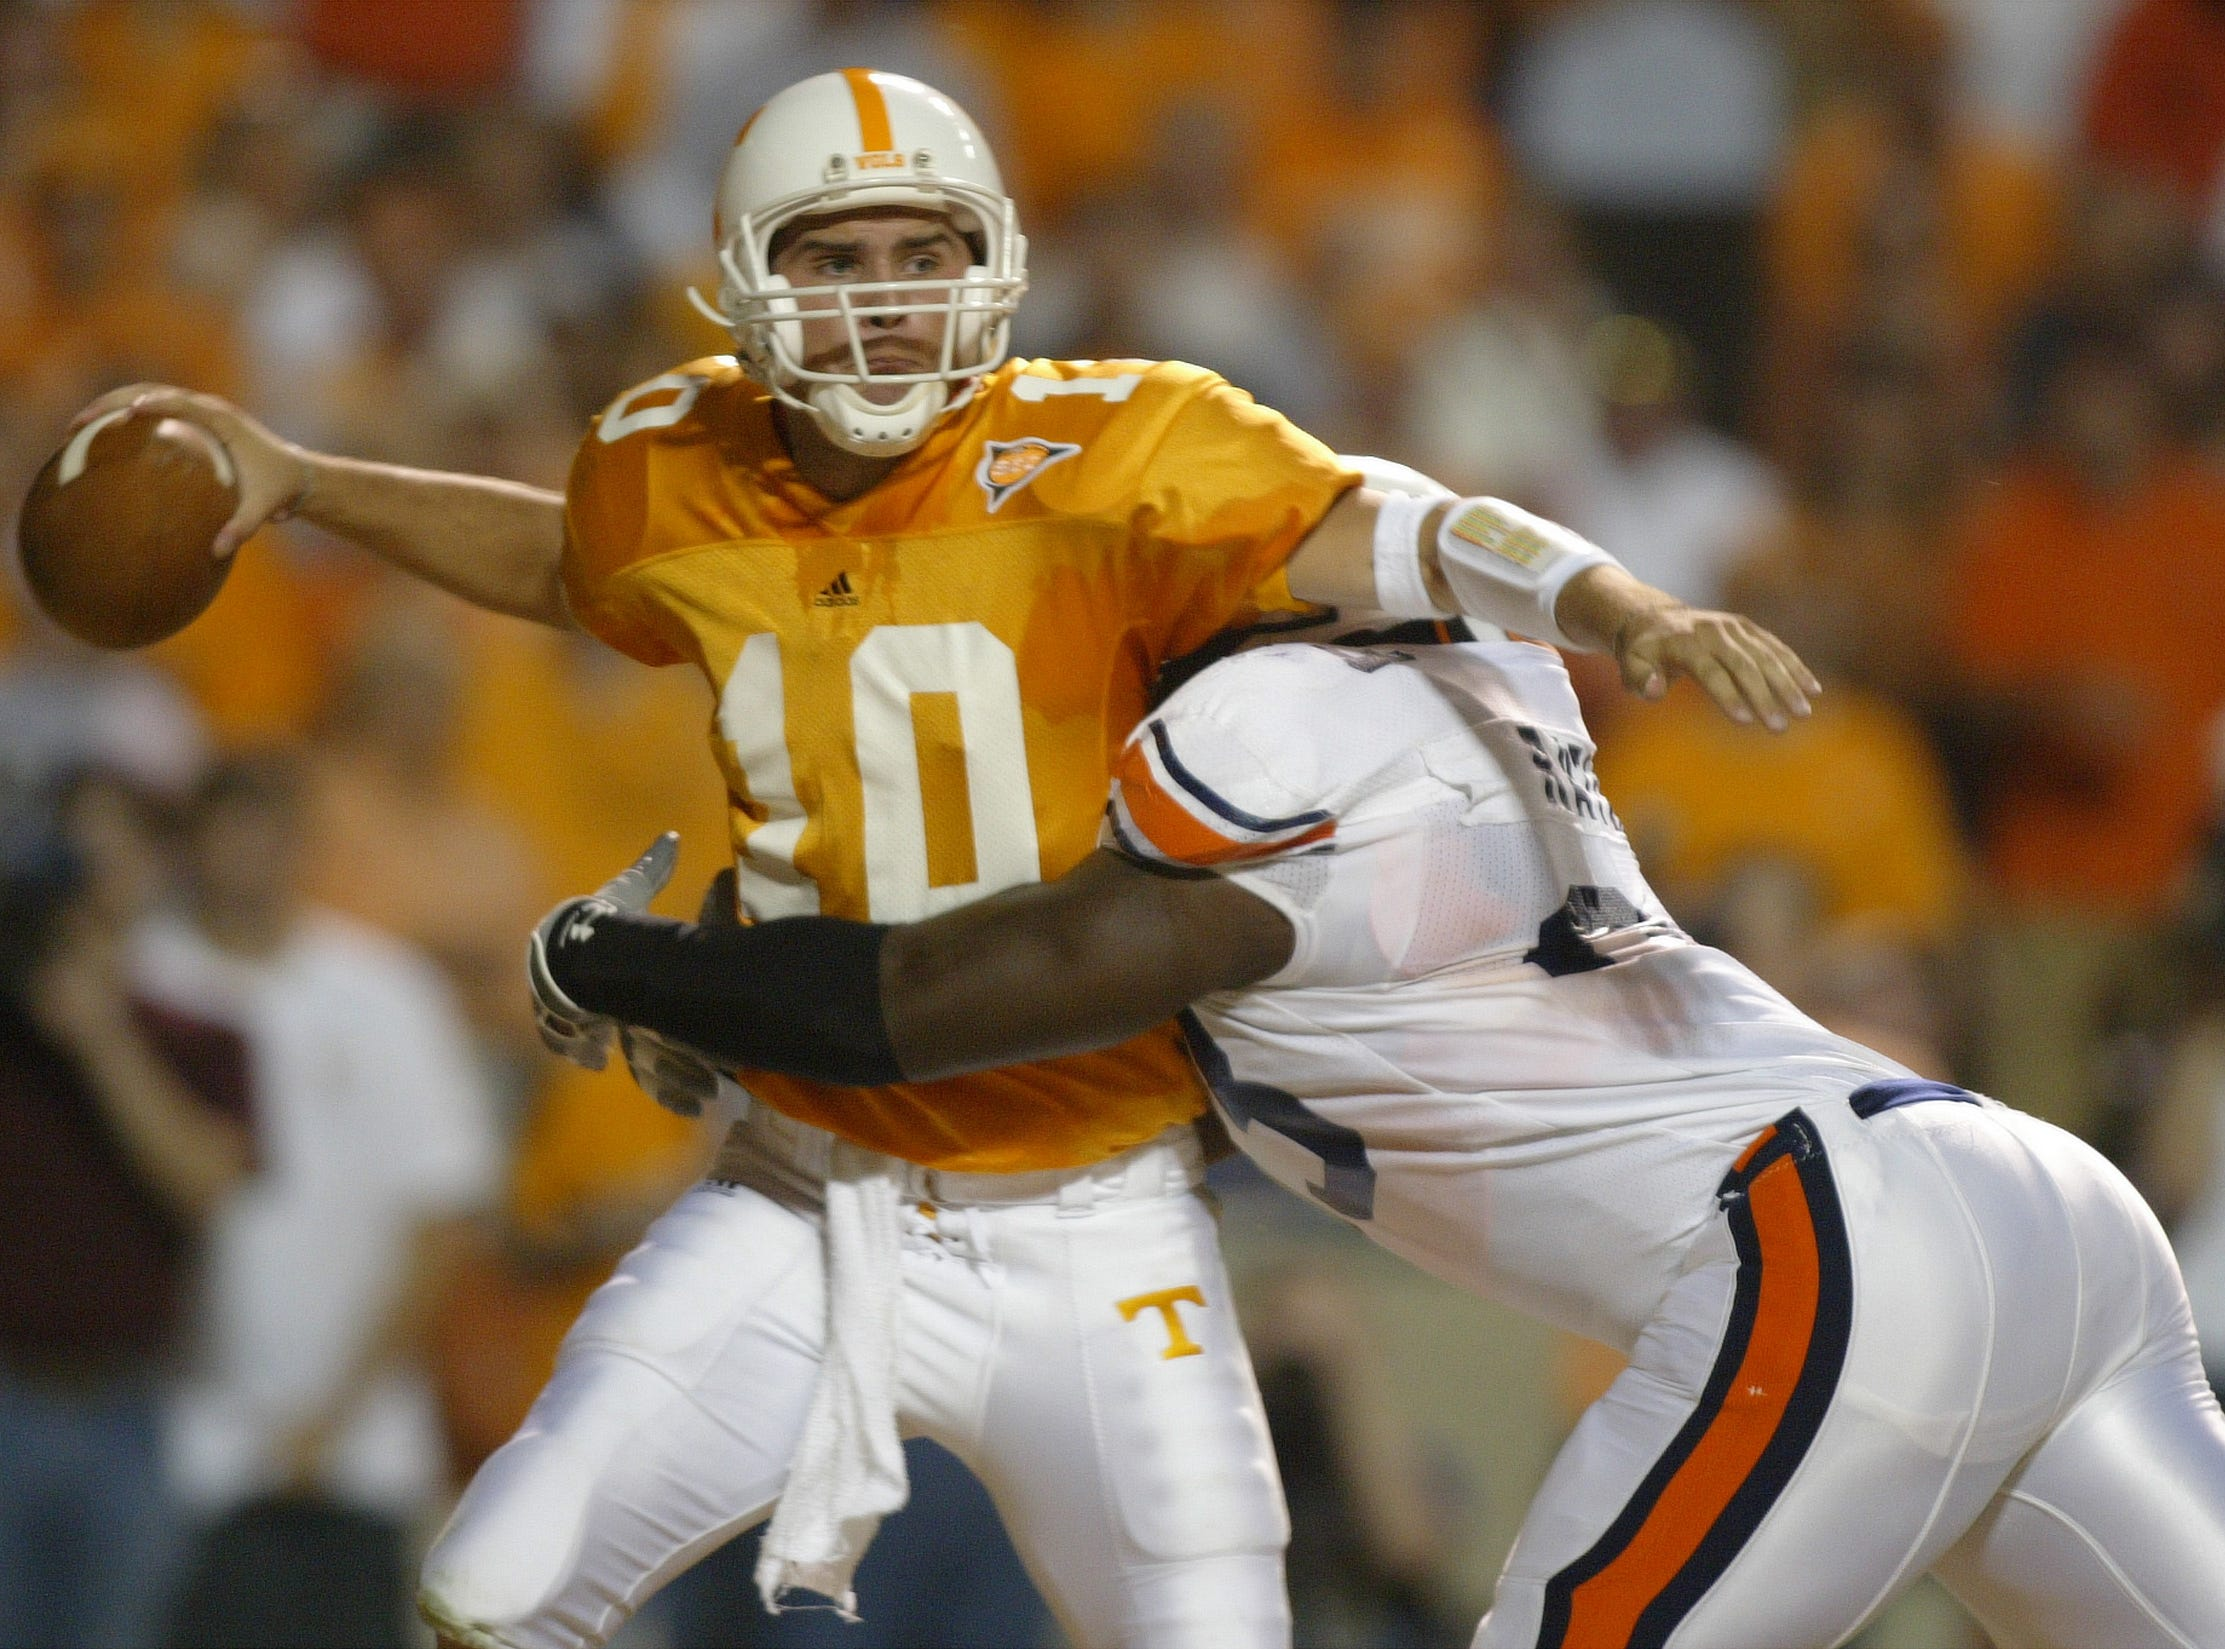 Tennessee quarterback Erik Ainge gets off a pass from his own end zone despite pressure by Auburn defensive tackle Jay Ratliff on Saturday at Neyland Stadium. Tennessee was beaten 34-10 by the Tigers. 10/02/04